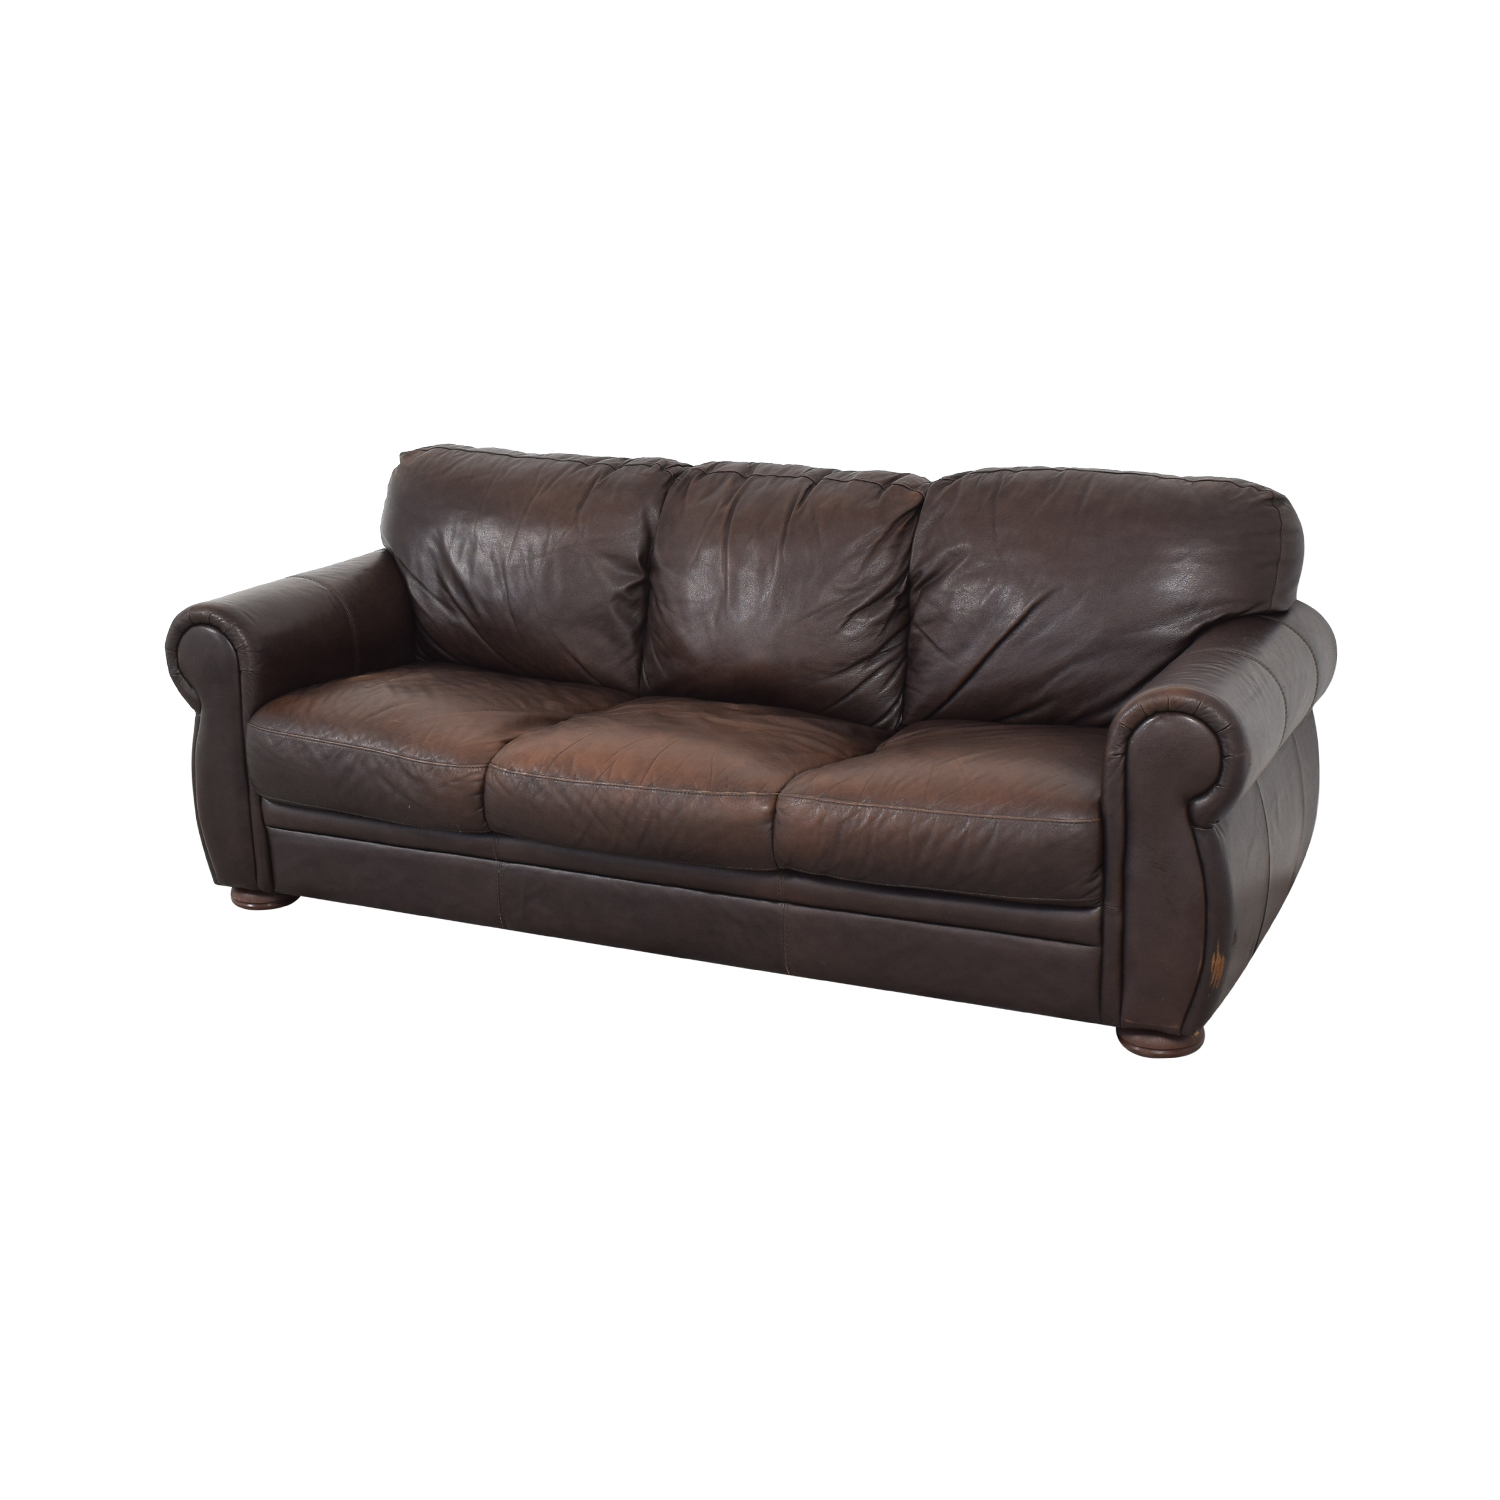 Chateau D'ax Marsala Leather Sofa / Sofas